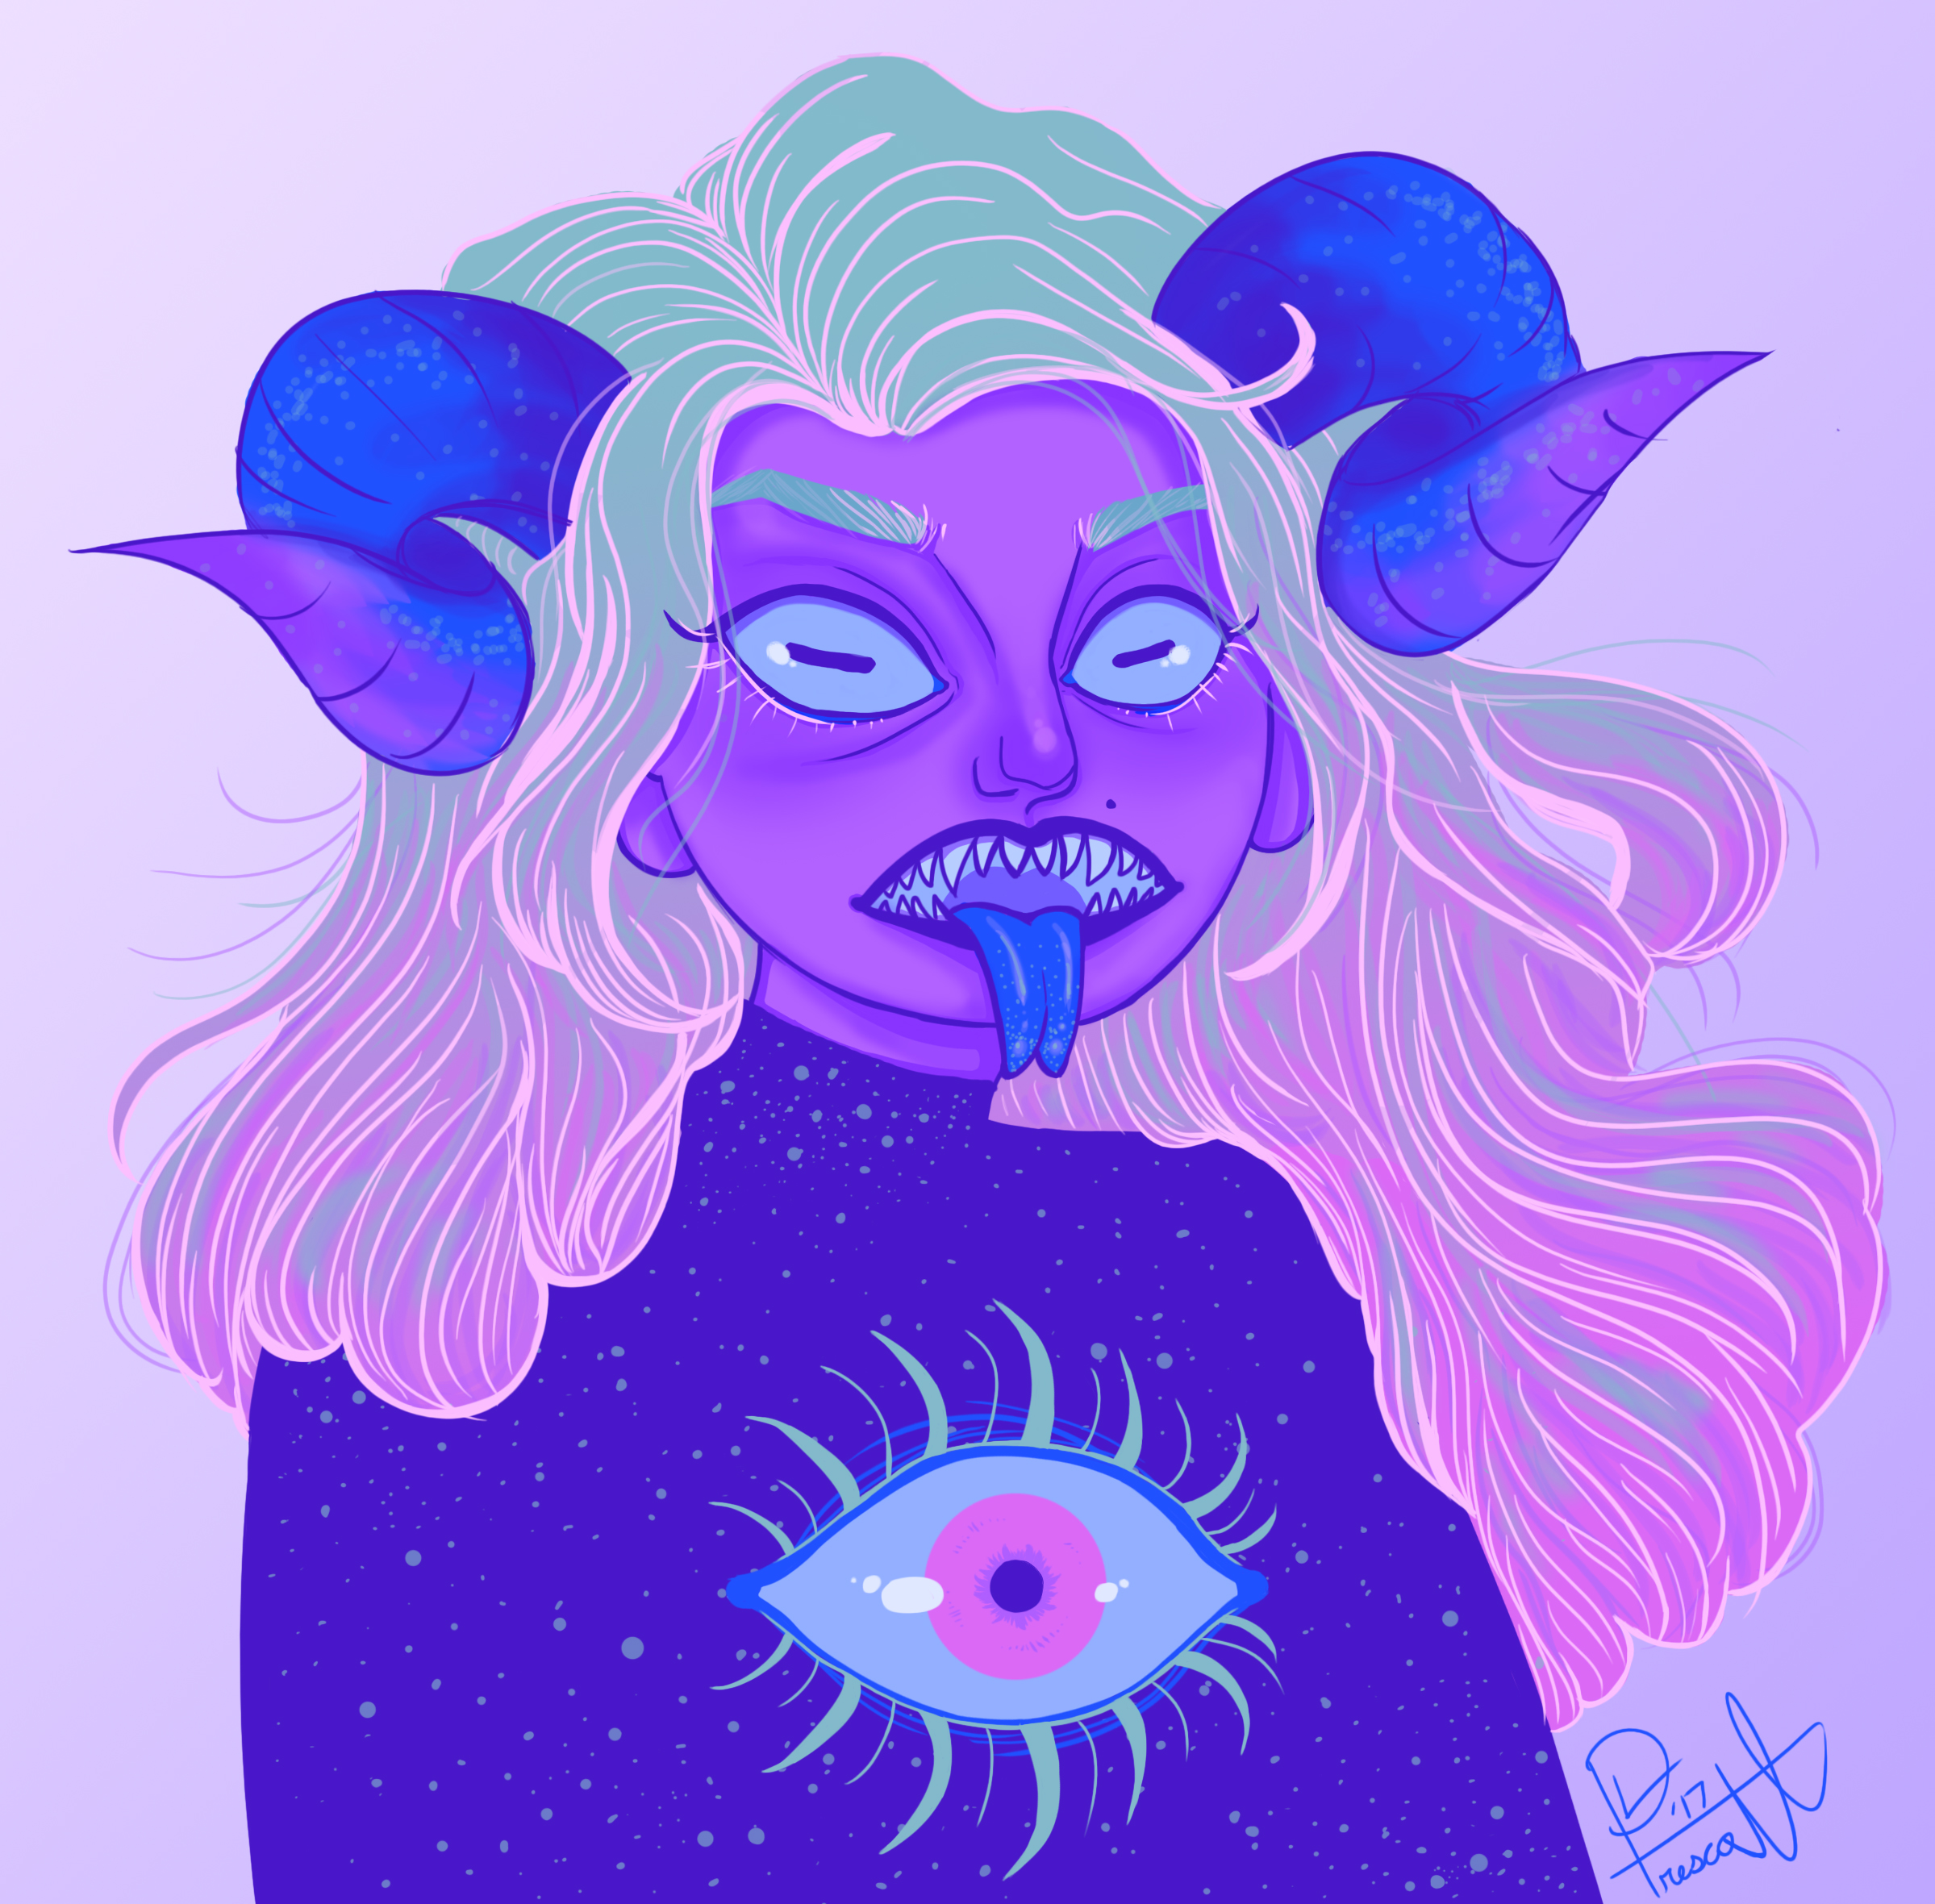 Cosmic demon portrait